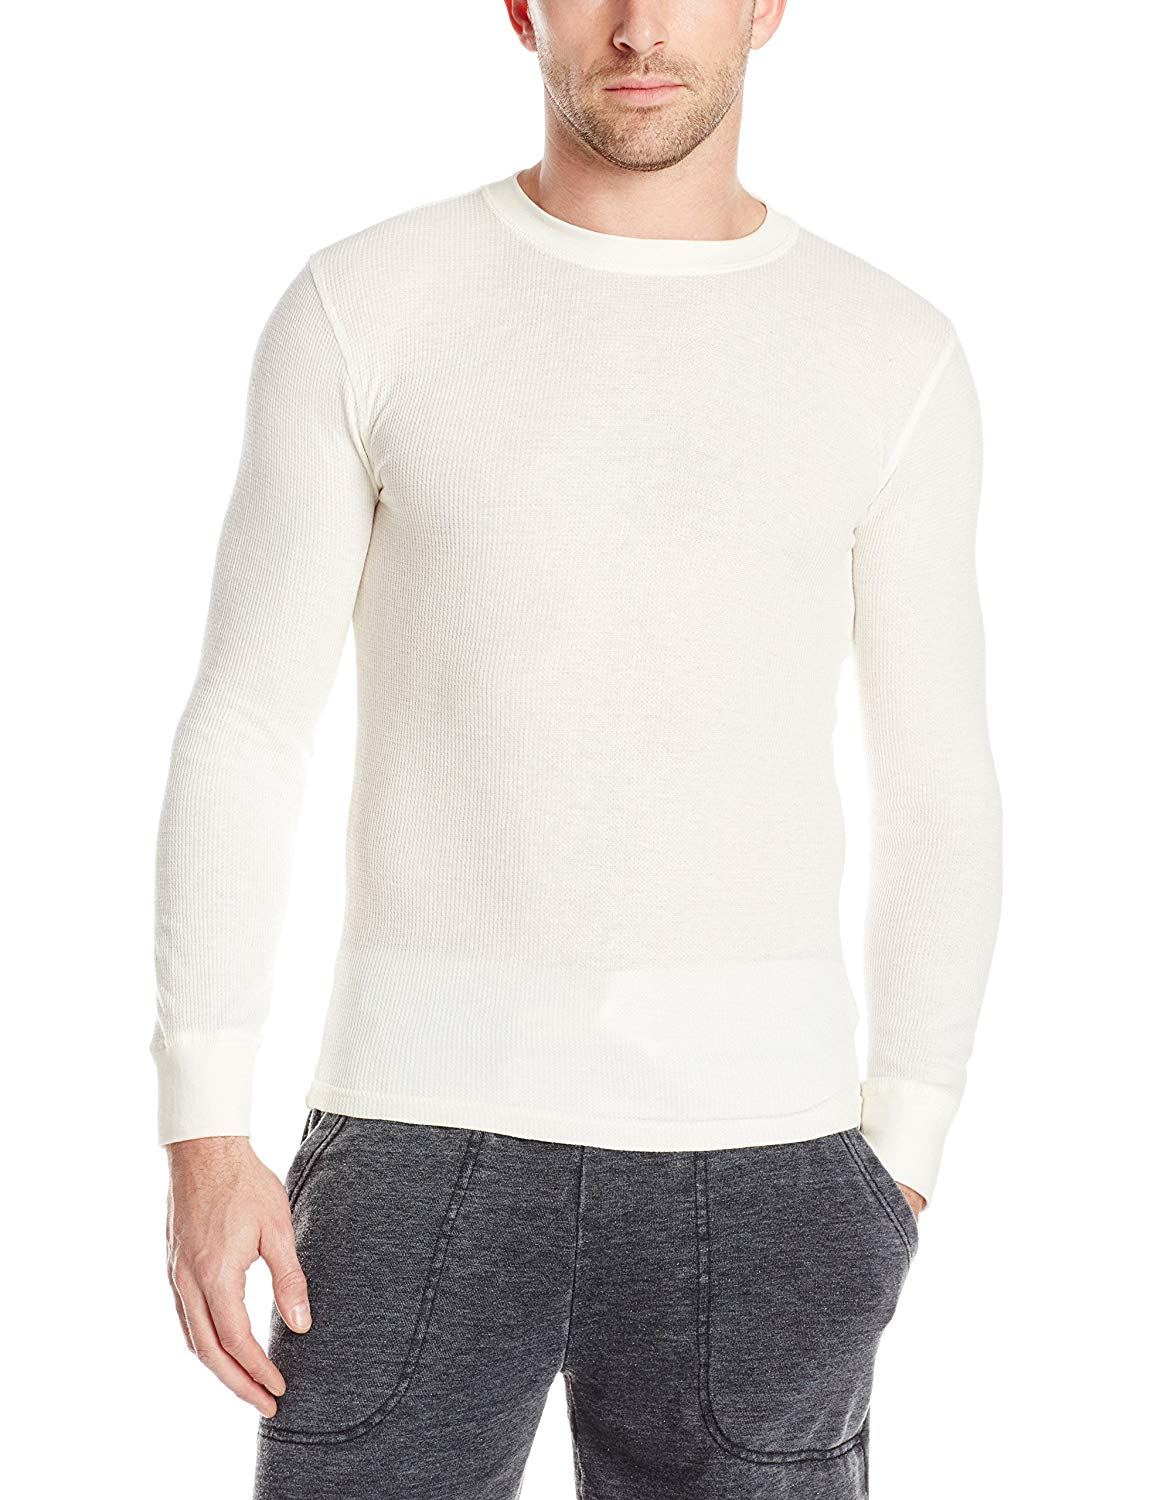 54d63bc5 Get Quotations · Bottoms Out Men's Long Sleeve Crew Neck Thermal Shirt  Waffle Knit